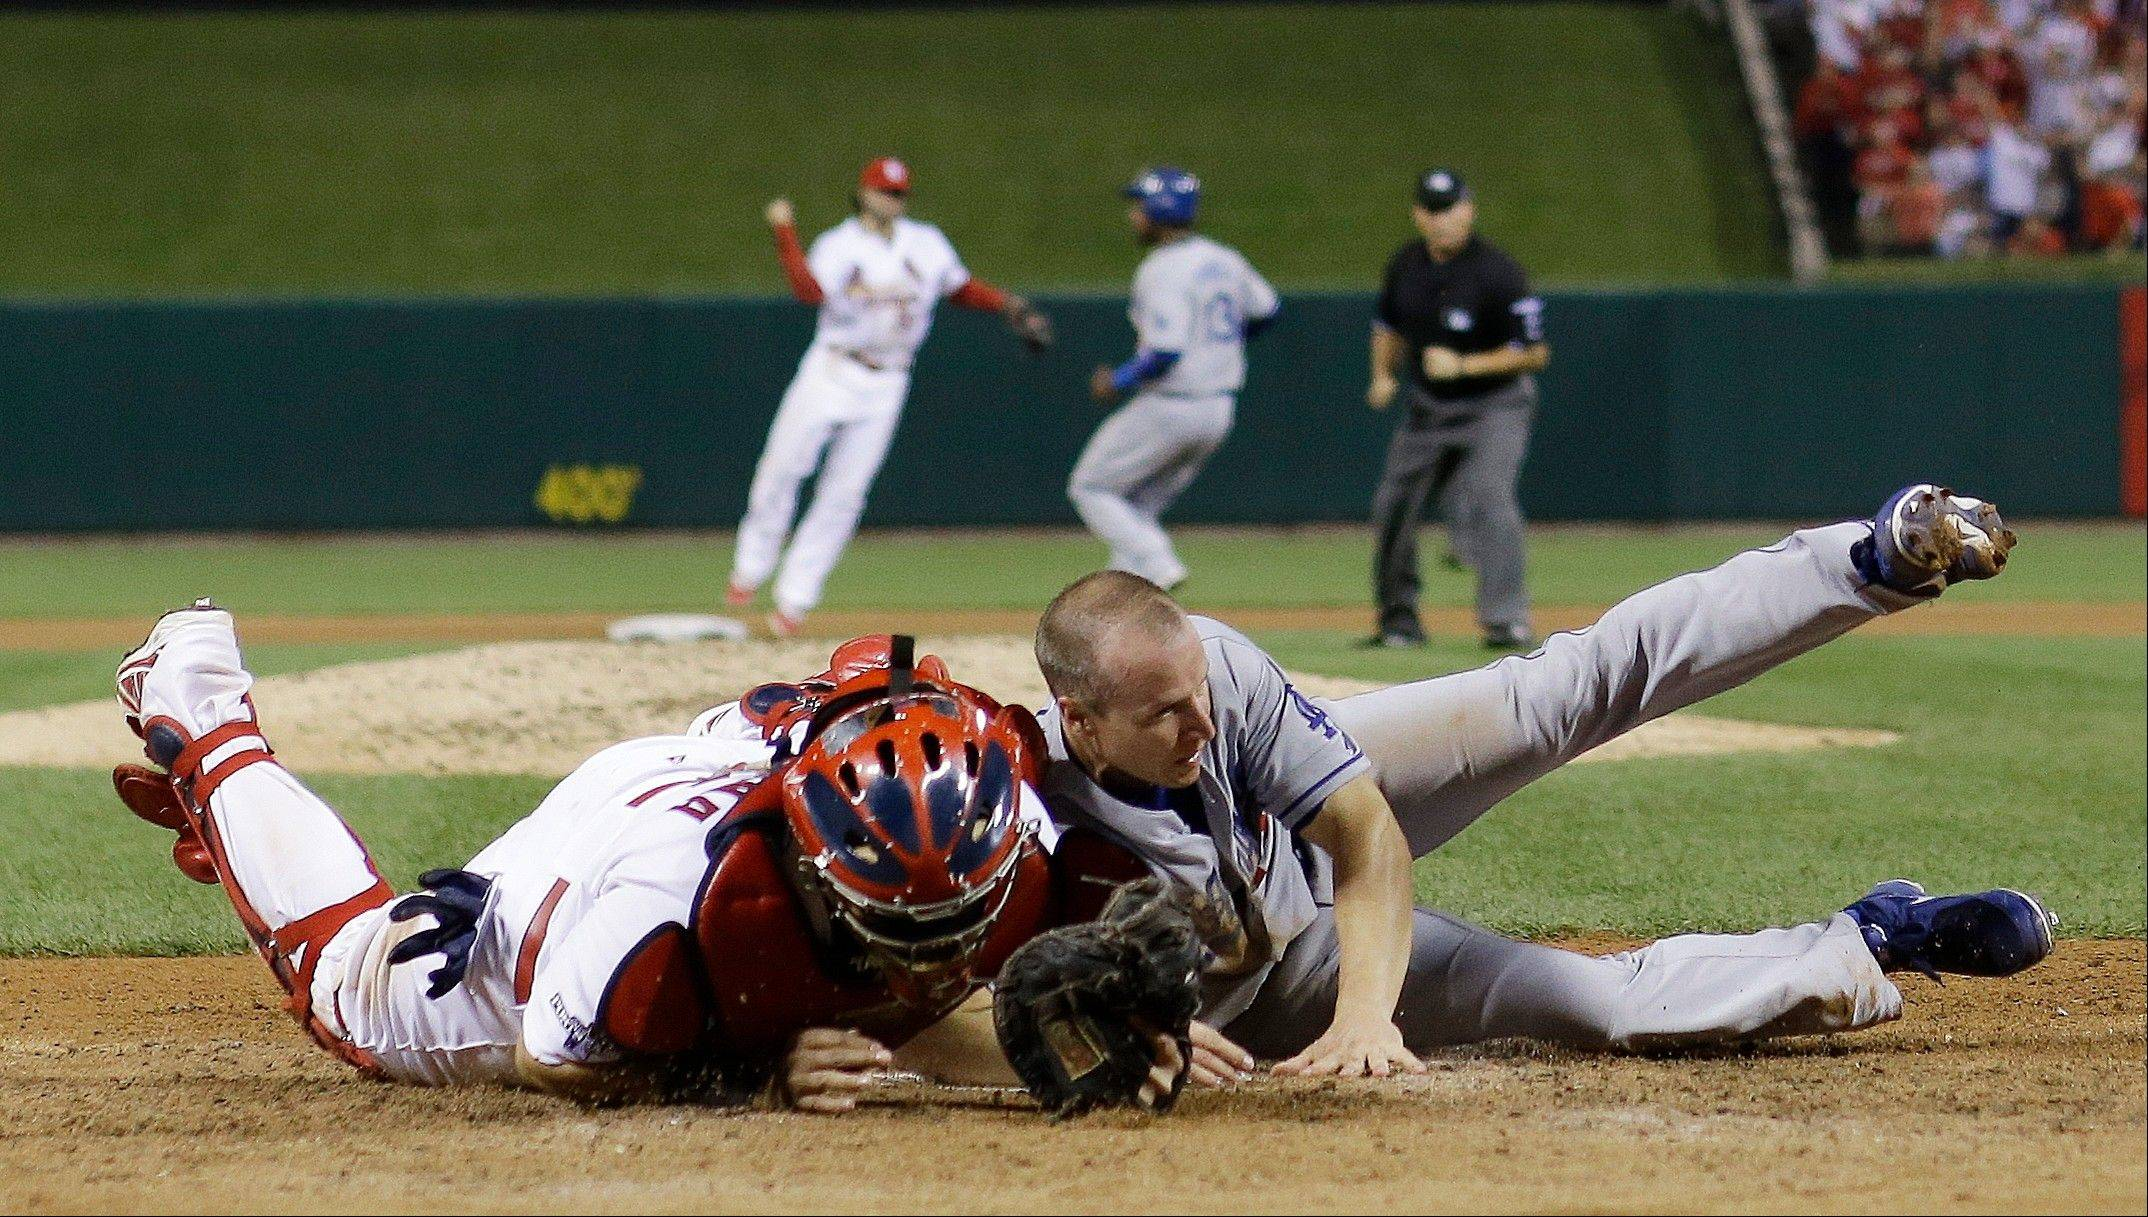 Cardinals catcher Yadier Molina tags out the Dodgers' Mark Ellis at home for the third out in the 10th inning.